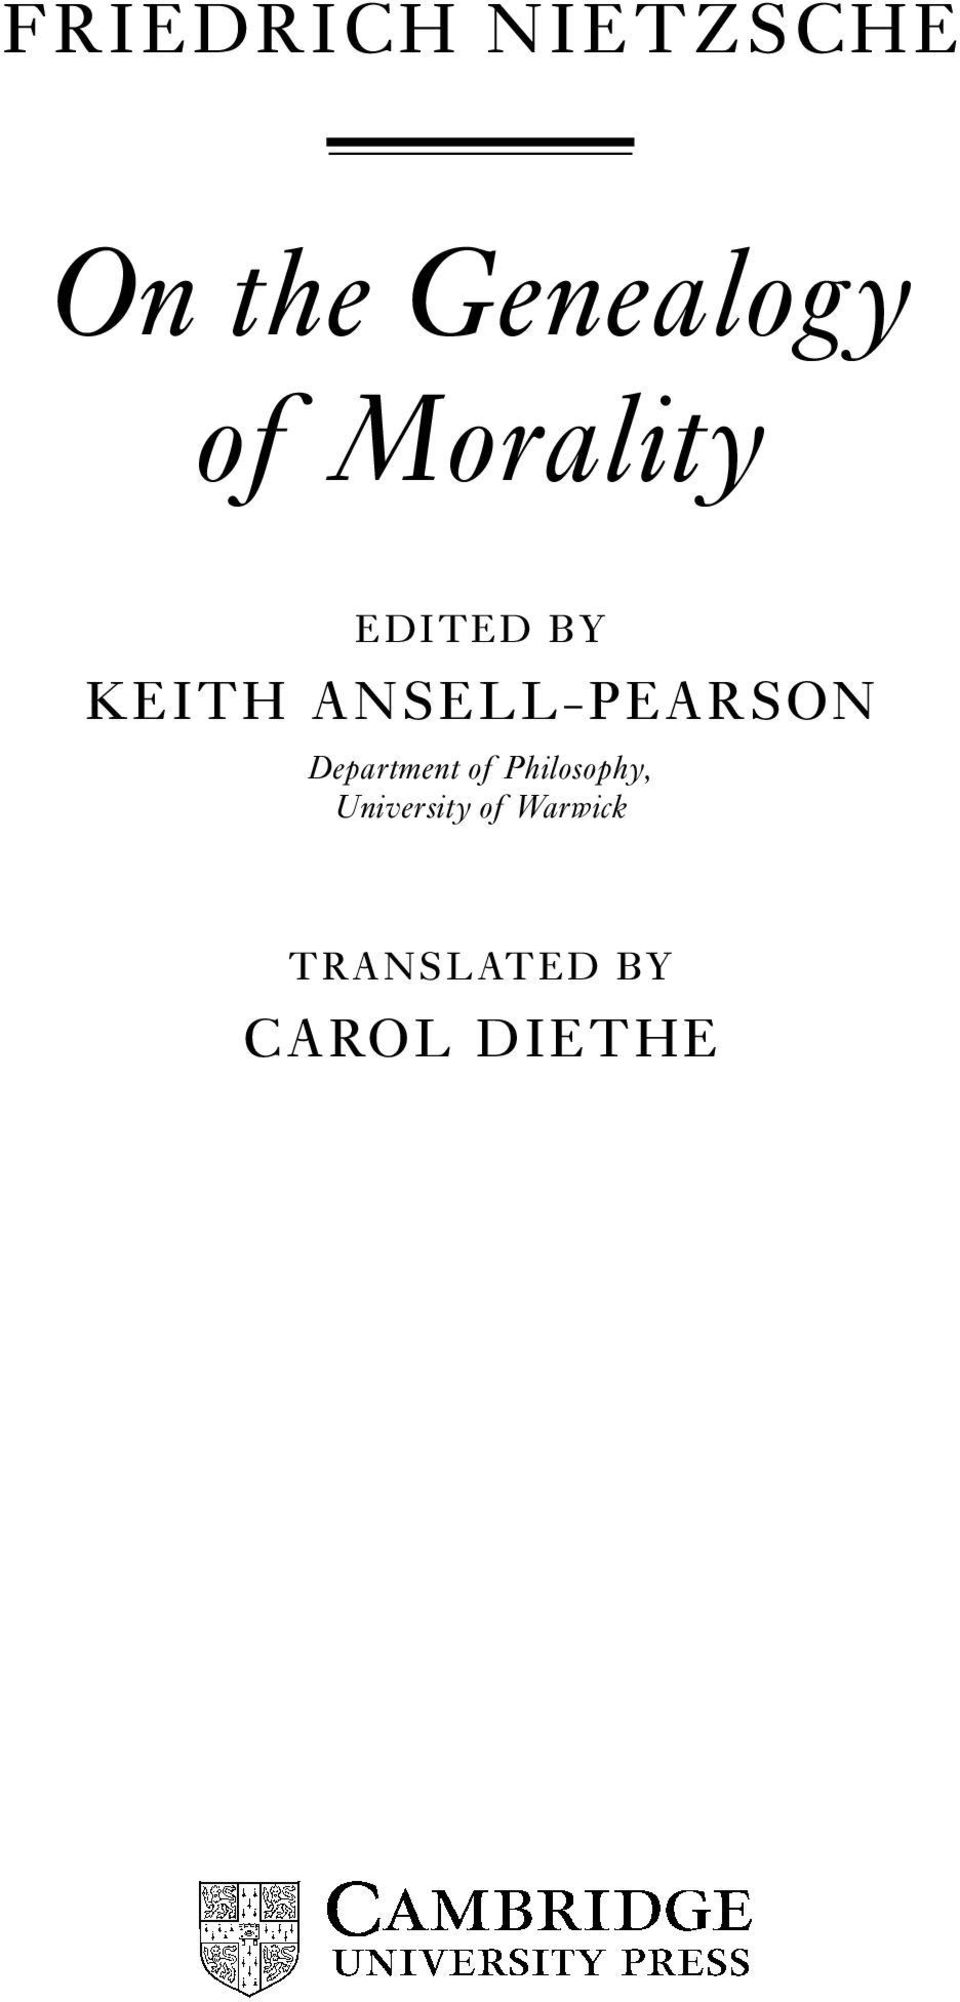 ANSELL-PEARSON Department of